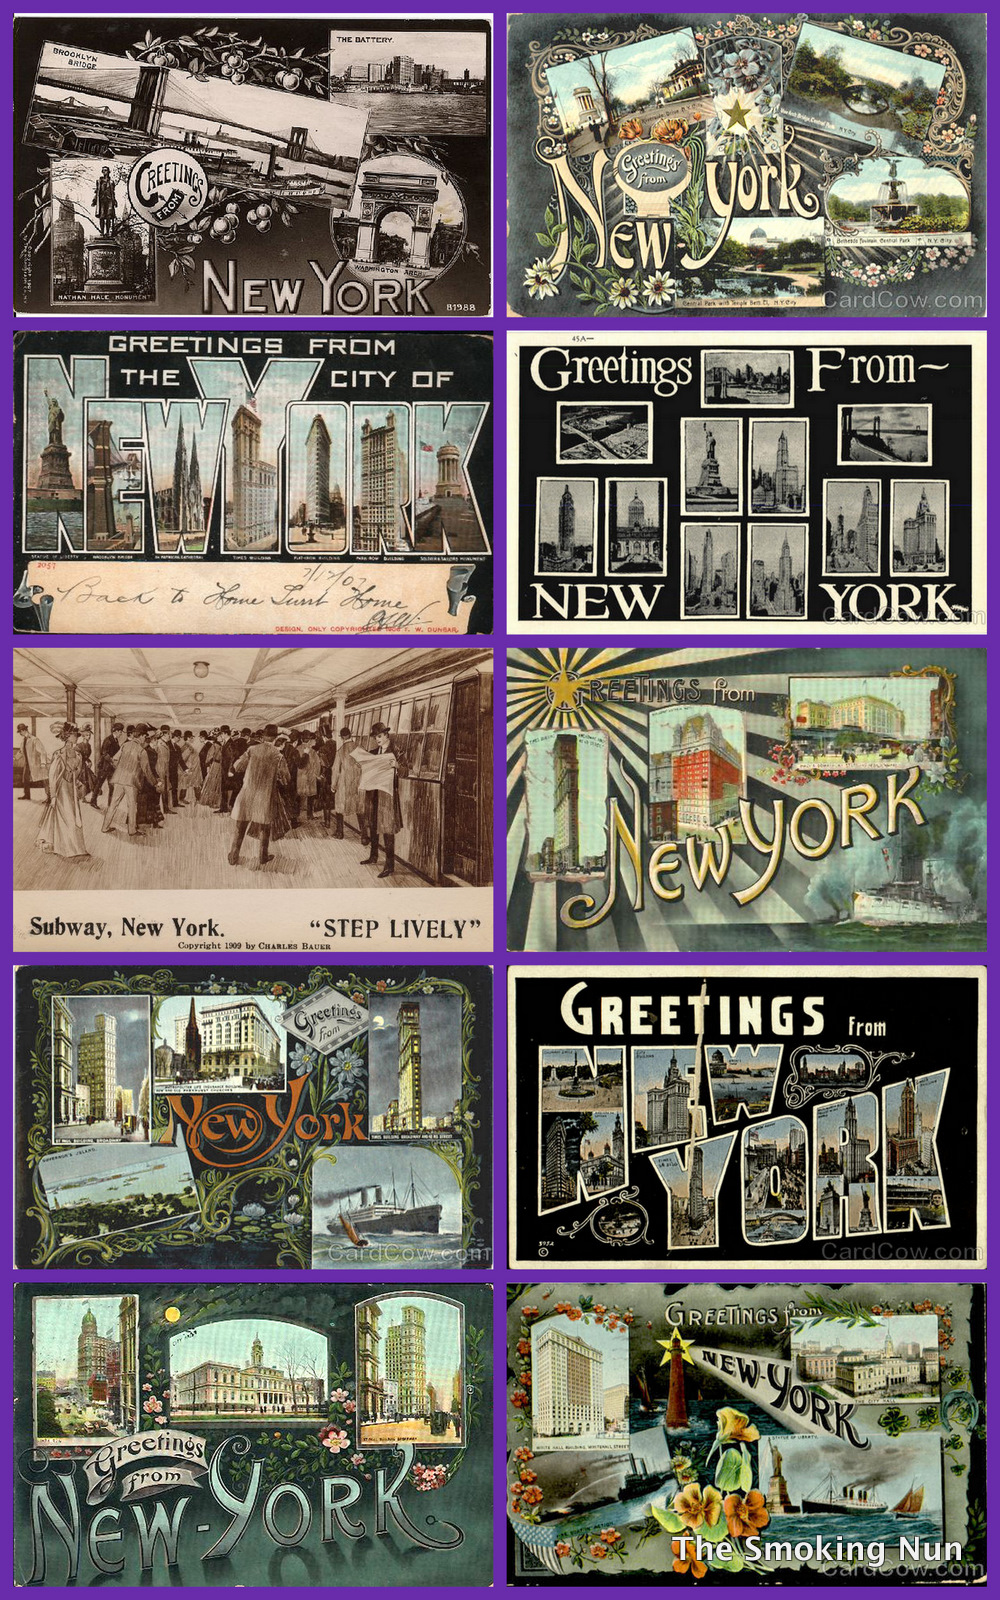 Nyc vintage nyc vintage image of the day greetings from new york above from the 1900s through 1920s kristyandbryce Images